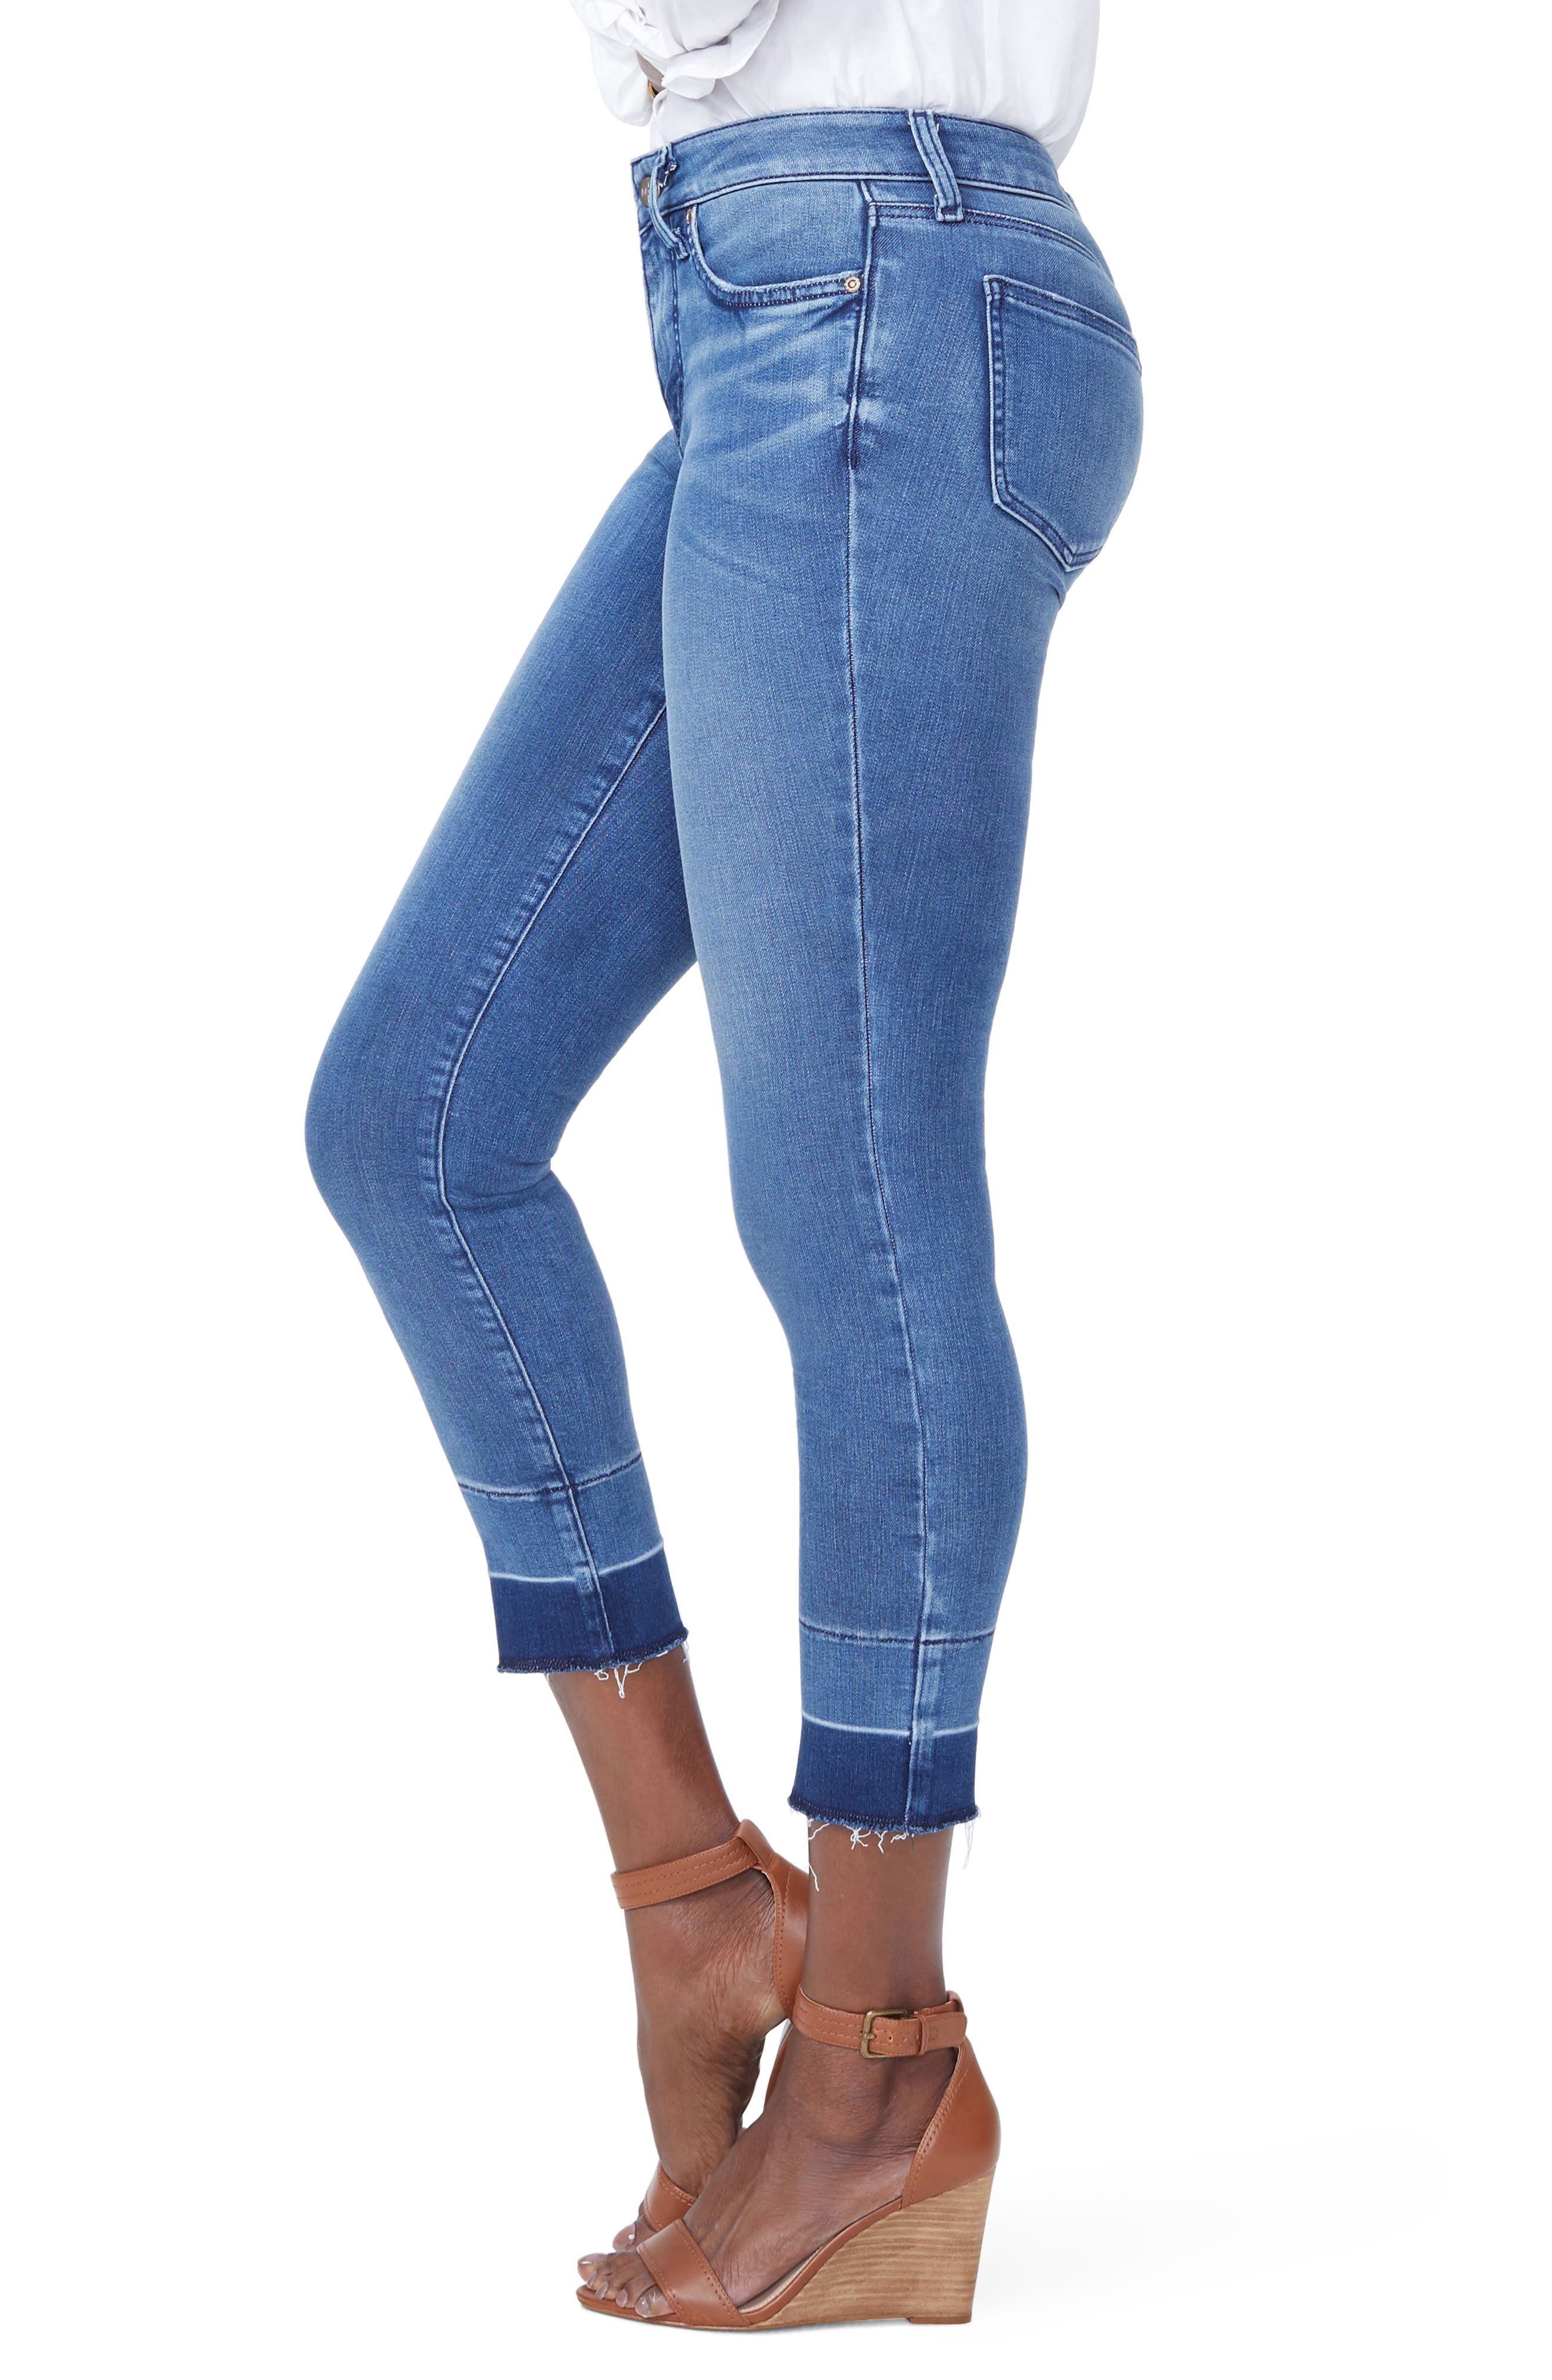 Alina Release Hem Ankle Skinny Jeans,                             Alternate thumbnail 3, color,                             410